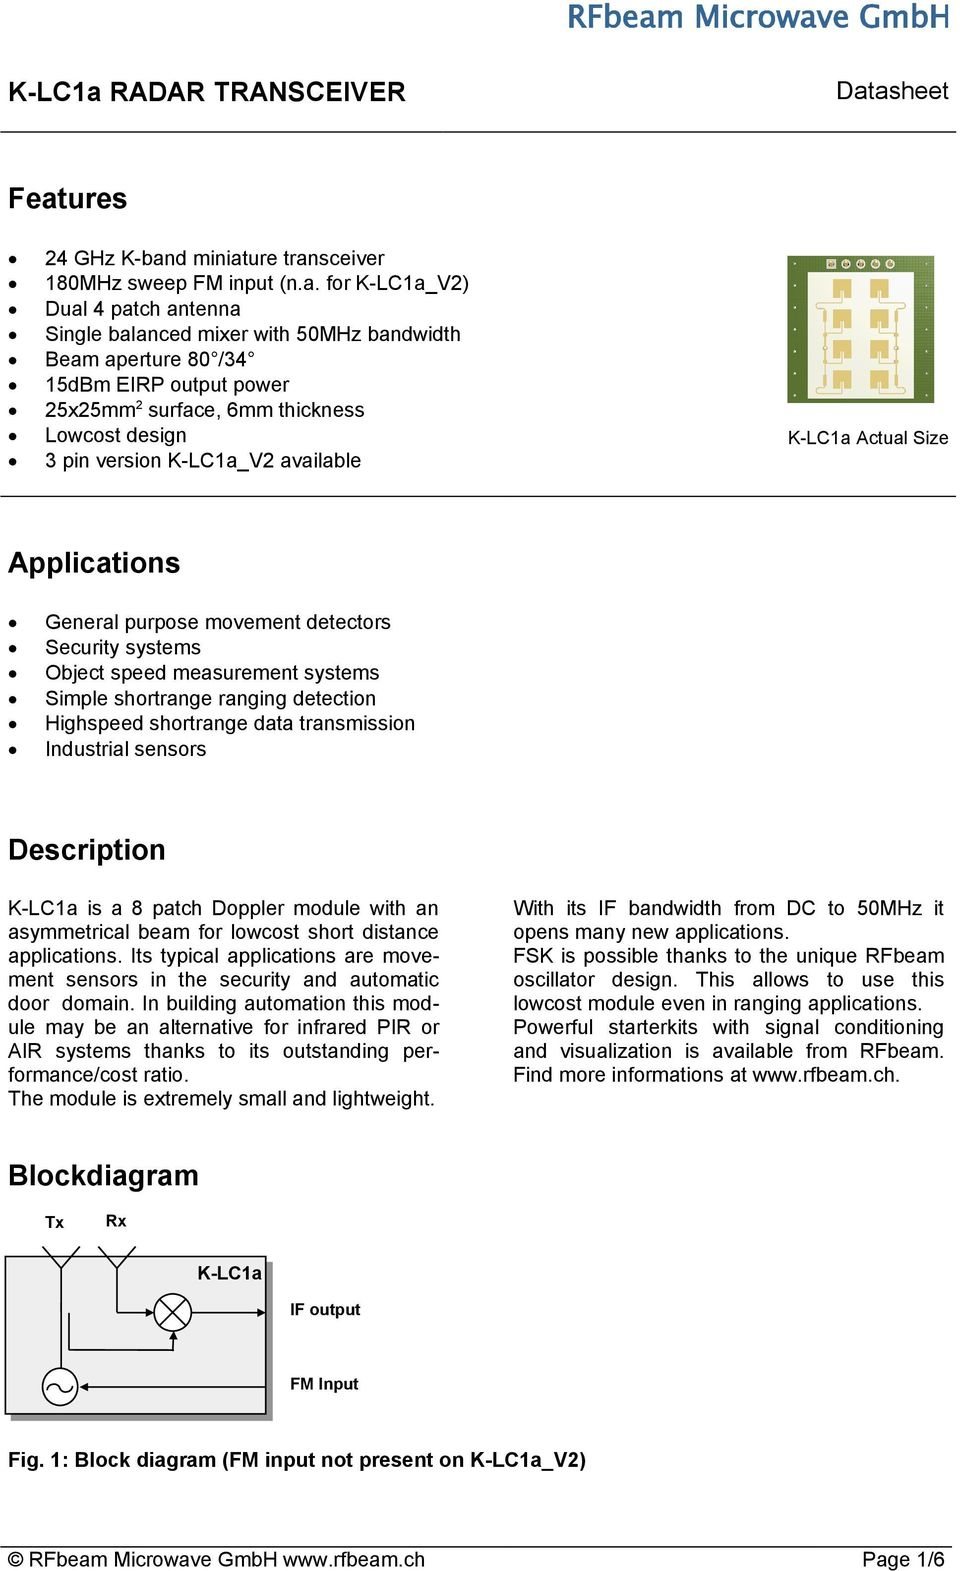 Features  Applications  Description  Blockdiagram  K-LC1a RADAR